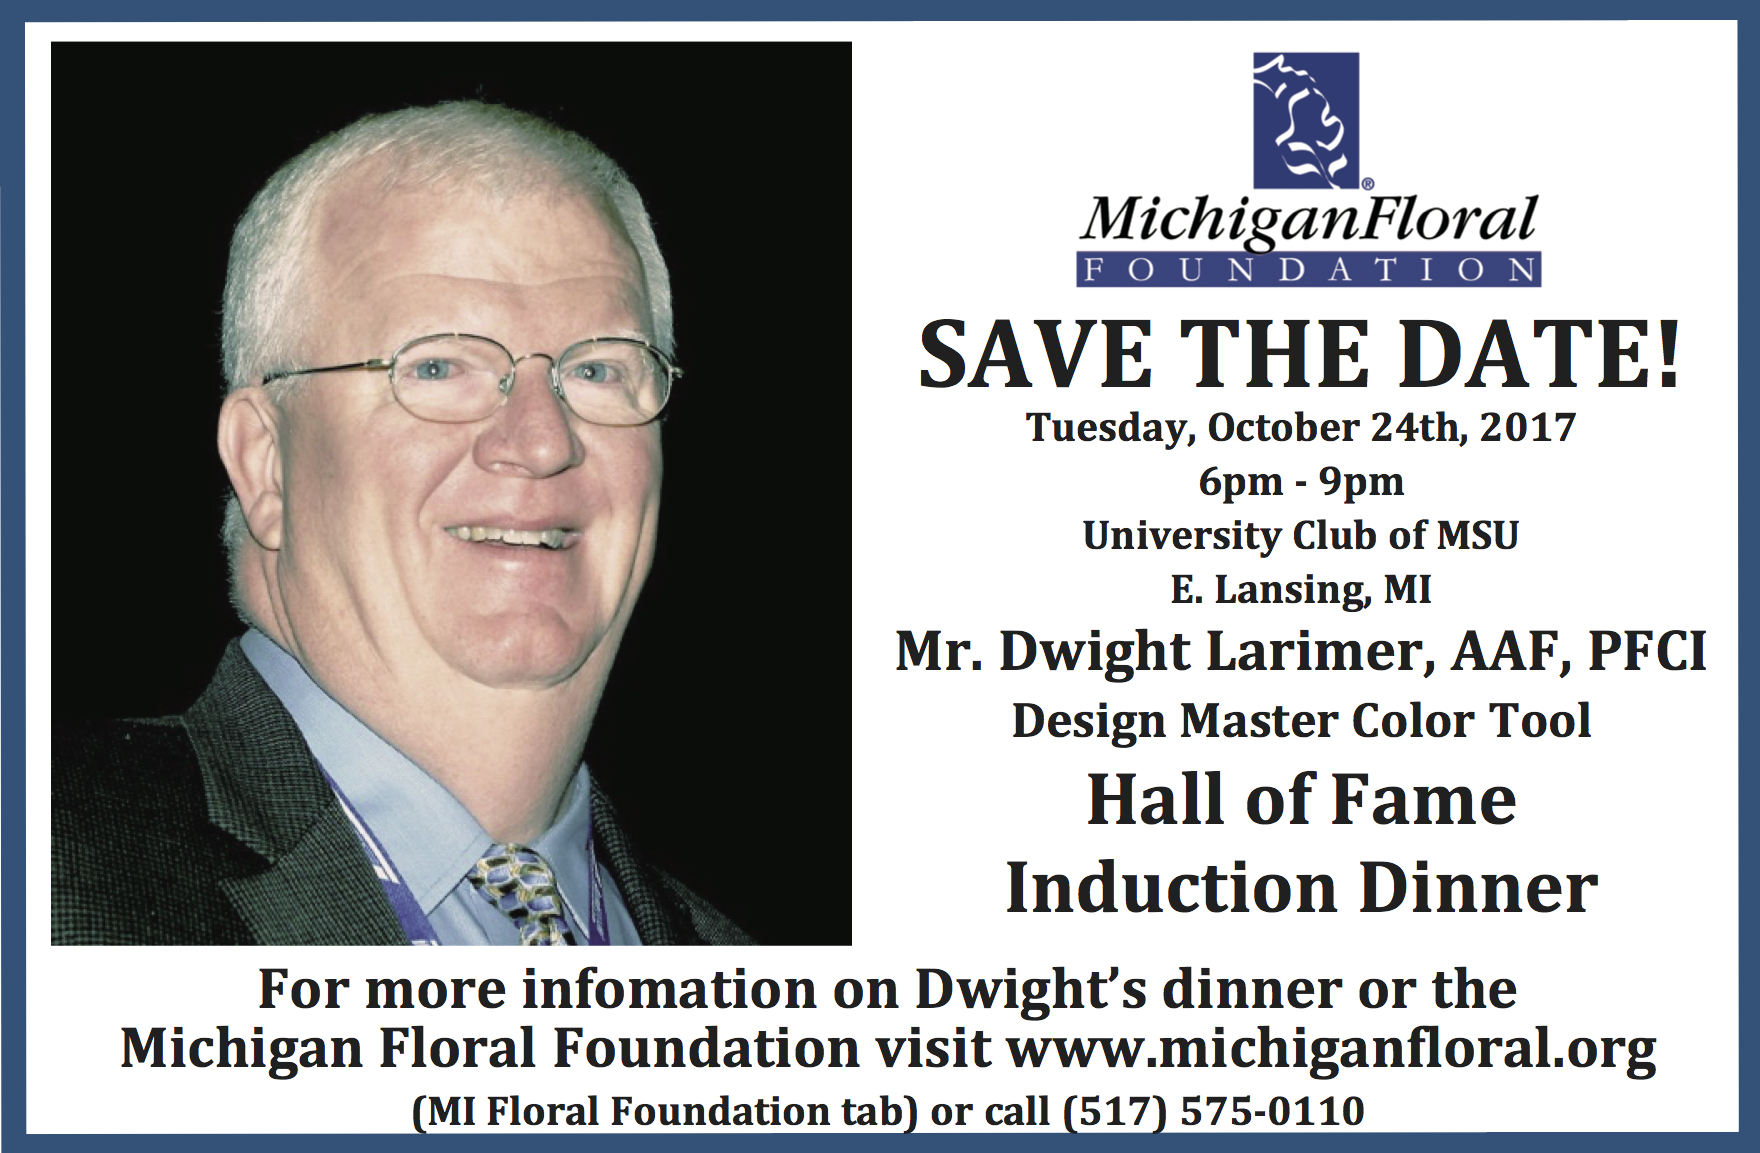 The Michigan Floral Foundation